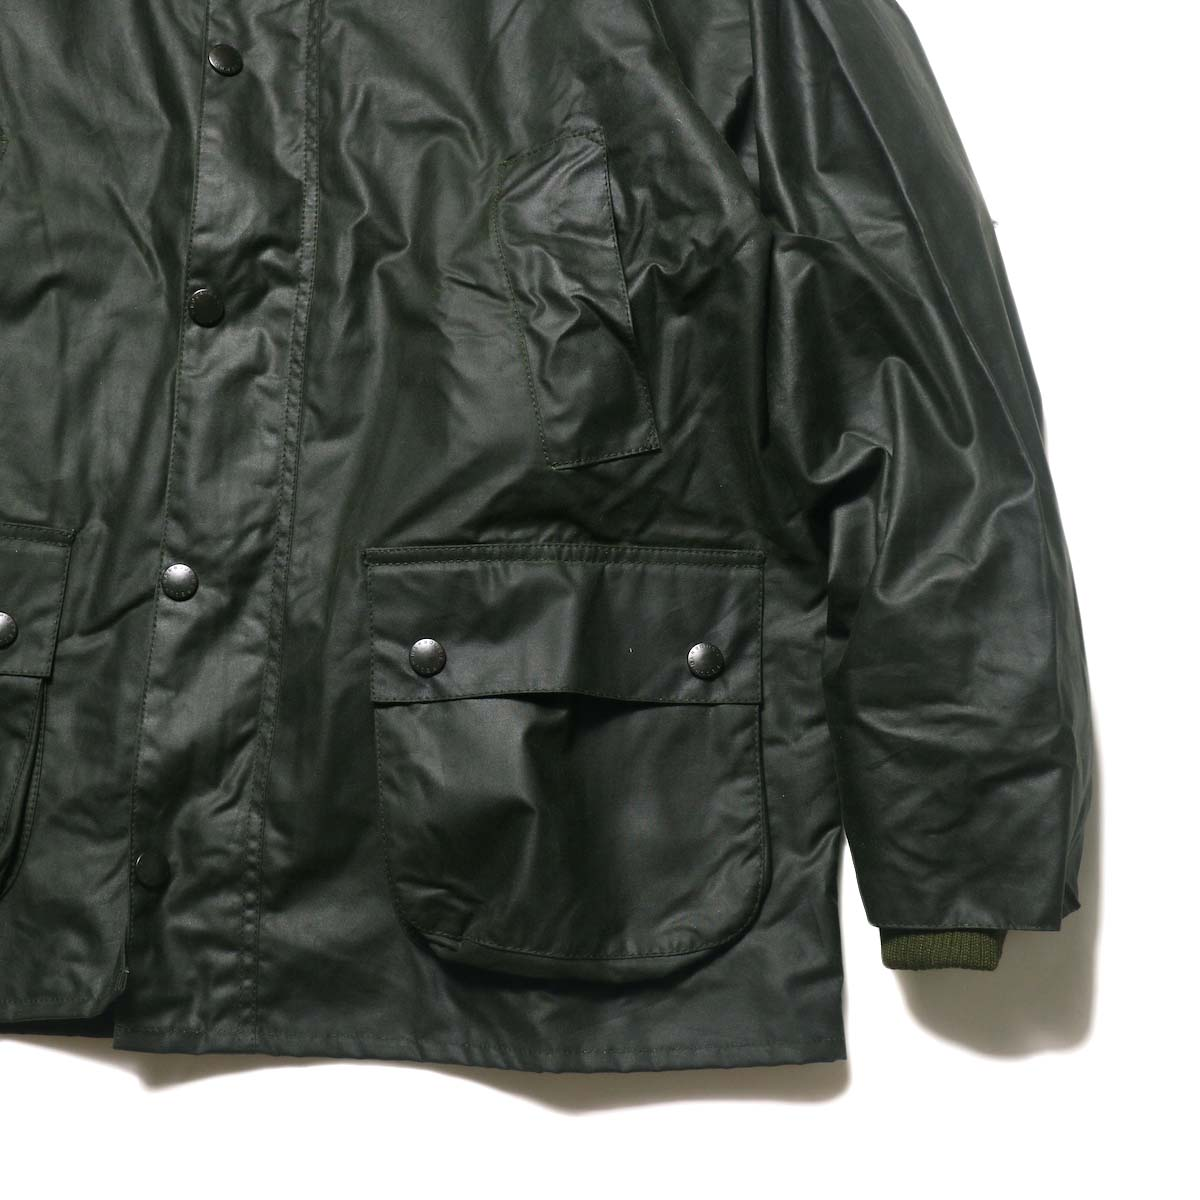 Barbour / Bedale Original (Sage Green) 袖、ポケット、裾